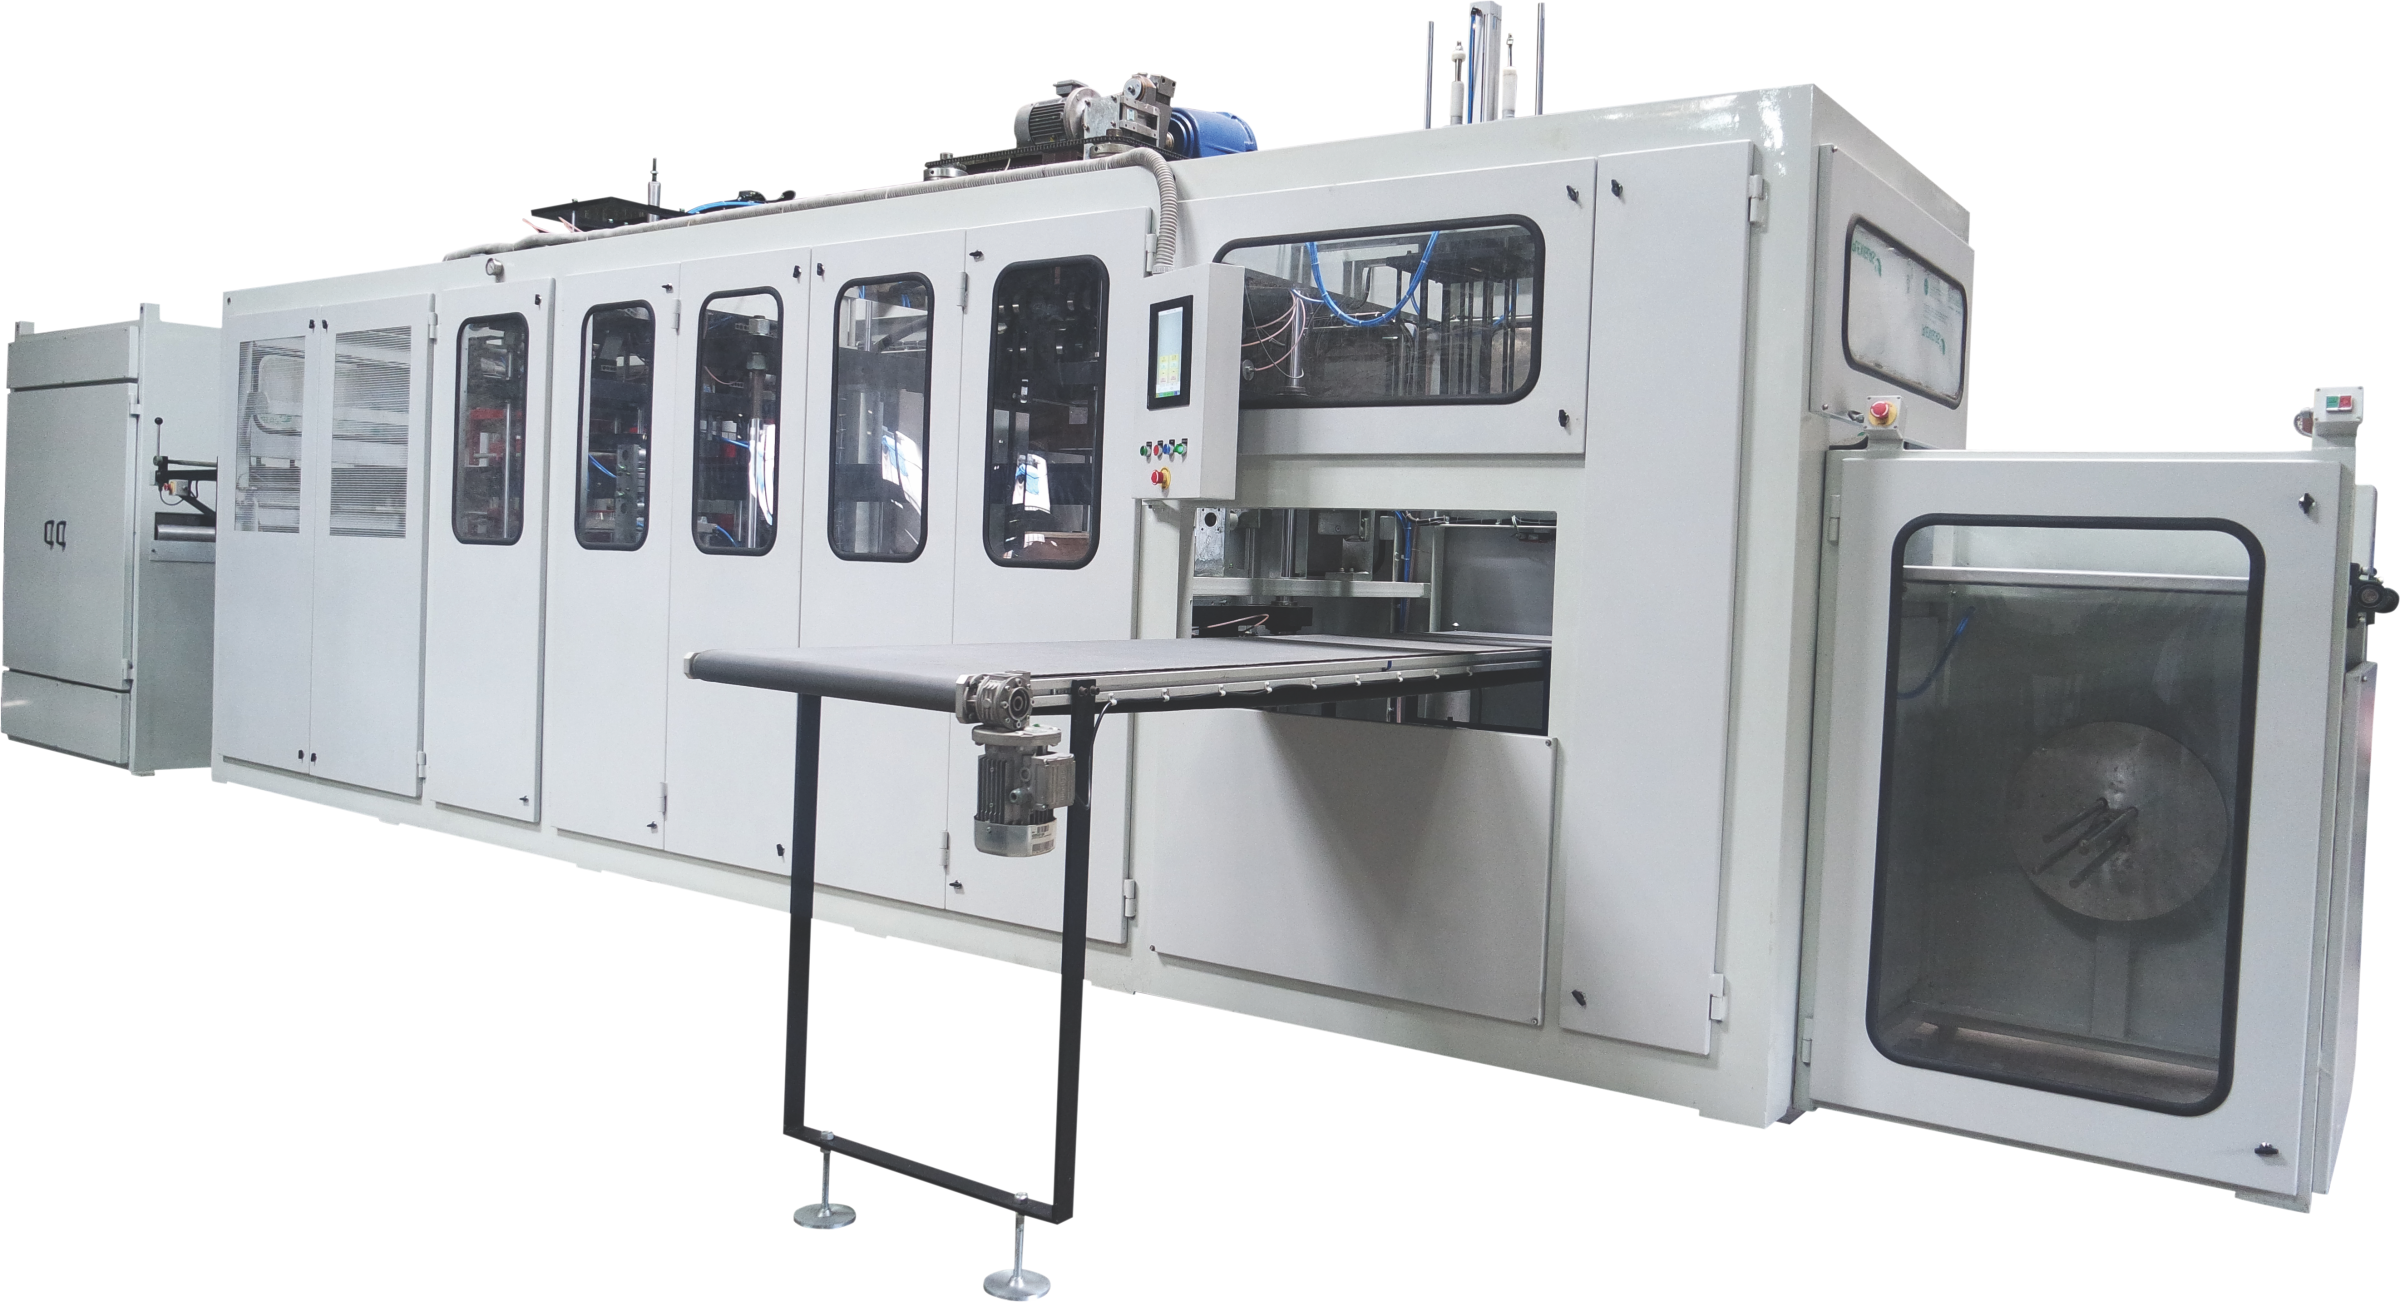 Servo Version - The Servo version has the forming station is driven by servo motors, punching using servo motors and stacking using servo motors as well. This is a fully automatic high speed machine which can run upto 30 cycles/min.